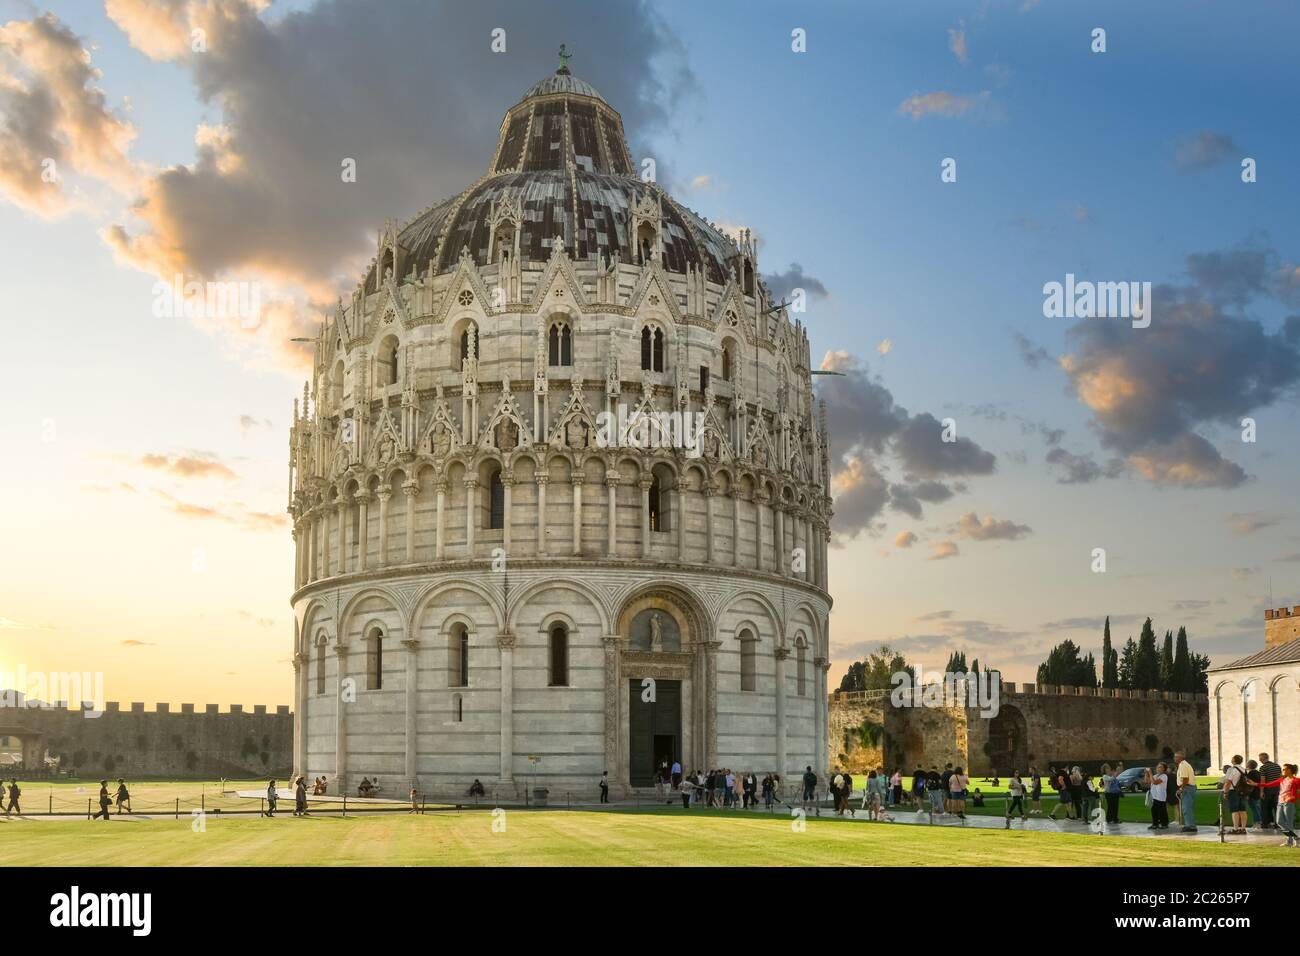 The historic, round Baptistery next to the tower and Duomo on the Field of Miracles, in the Tuscan city of Pisa Italy at sunset. Stock Photo